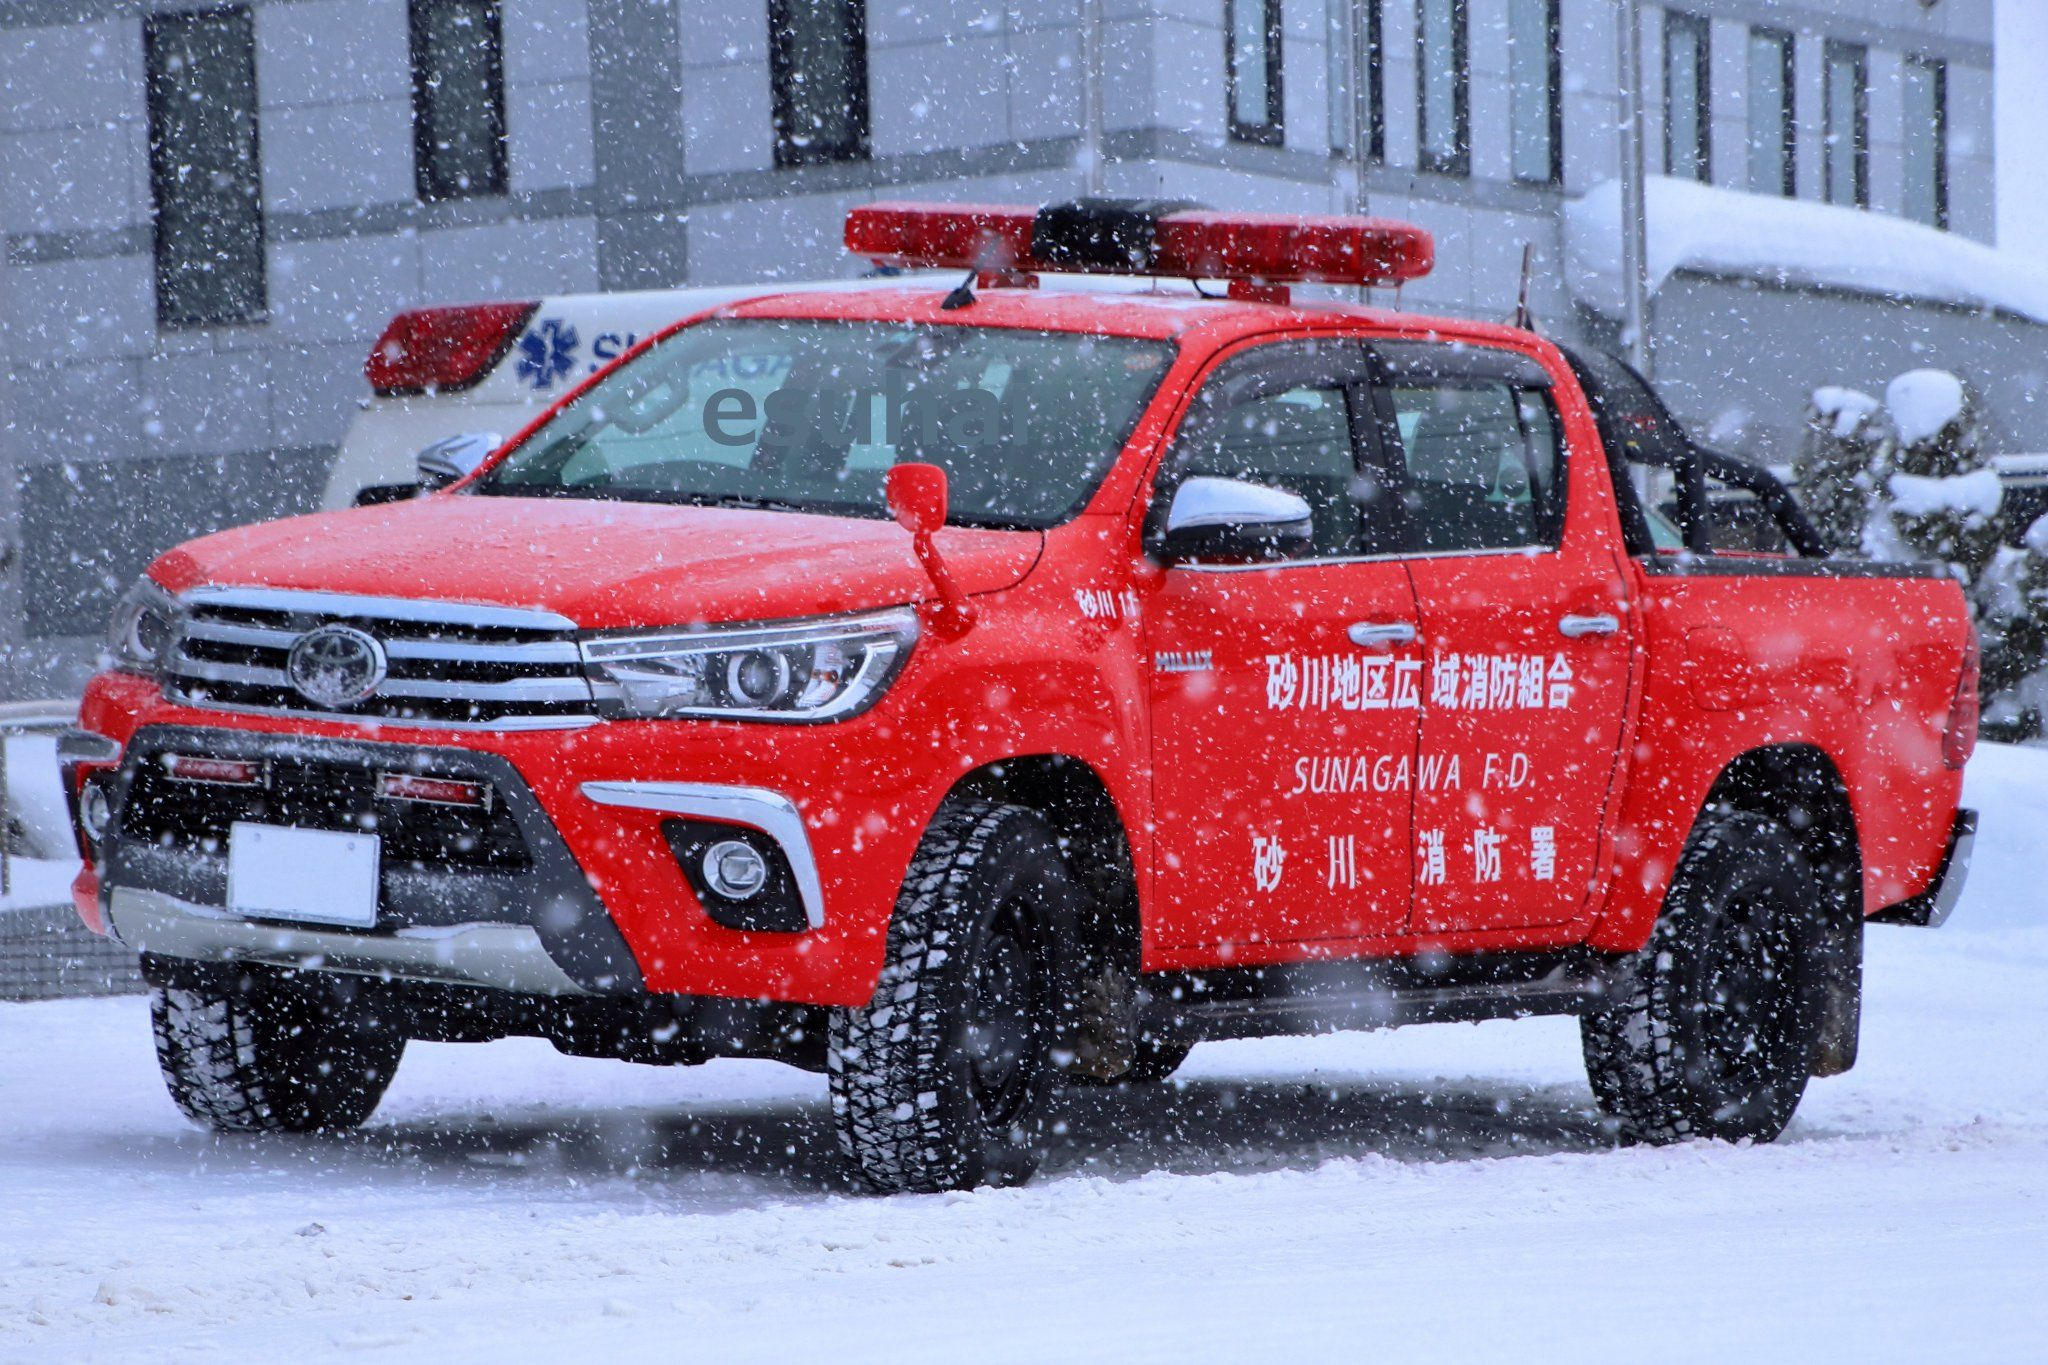 エスハイ On Twitter In 2021 Emergency Vehicles Fire Trucks Toyota Hilux